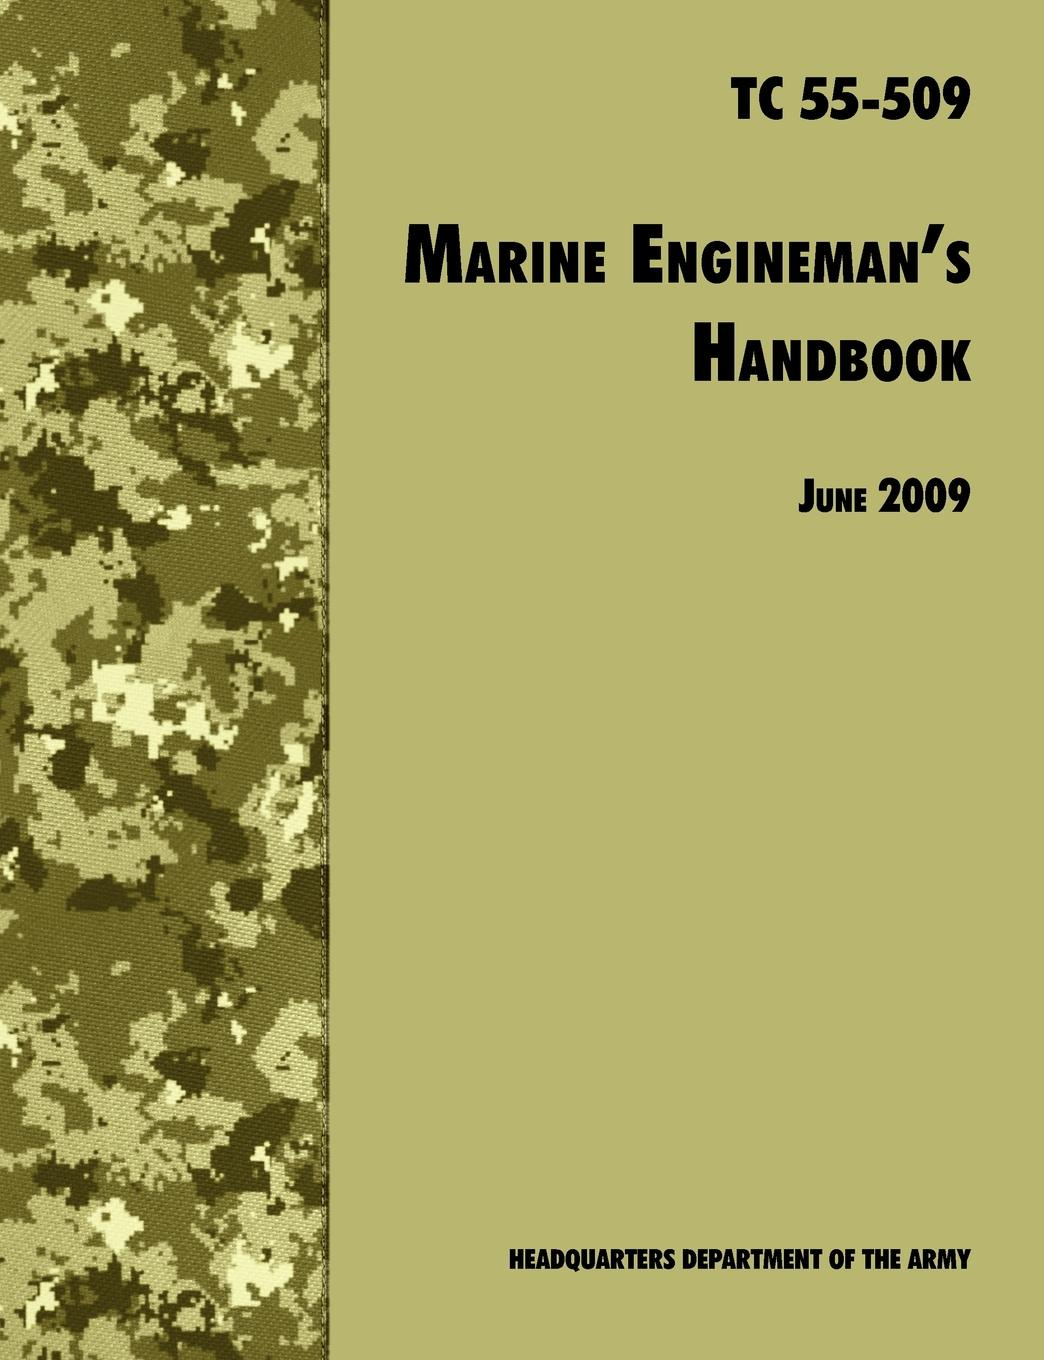 U.S. Department of the Army, Training and Doctrine Command, Transportation Training Division The Marine Engineman.s Handbook. The Official U.S. Army Training Handbook TC 55-509 principles of machine operation and maintenance